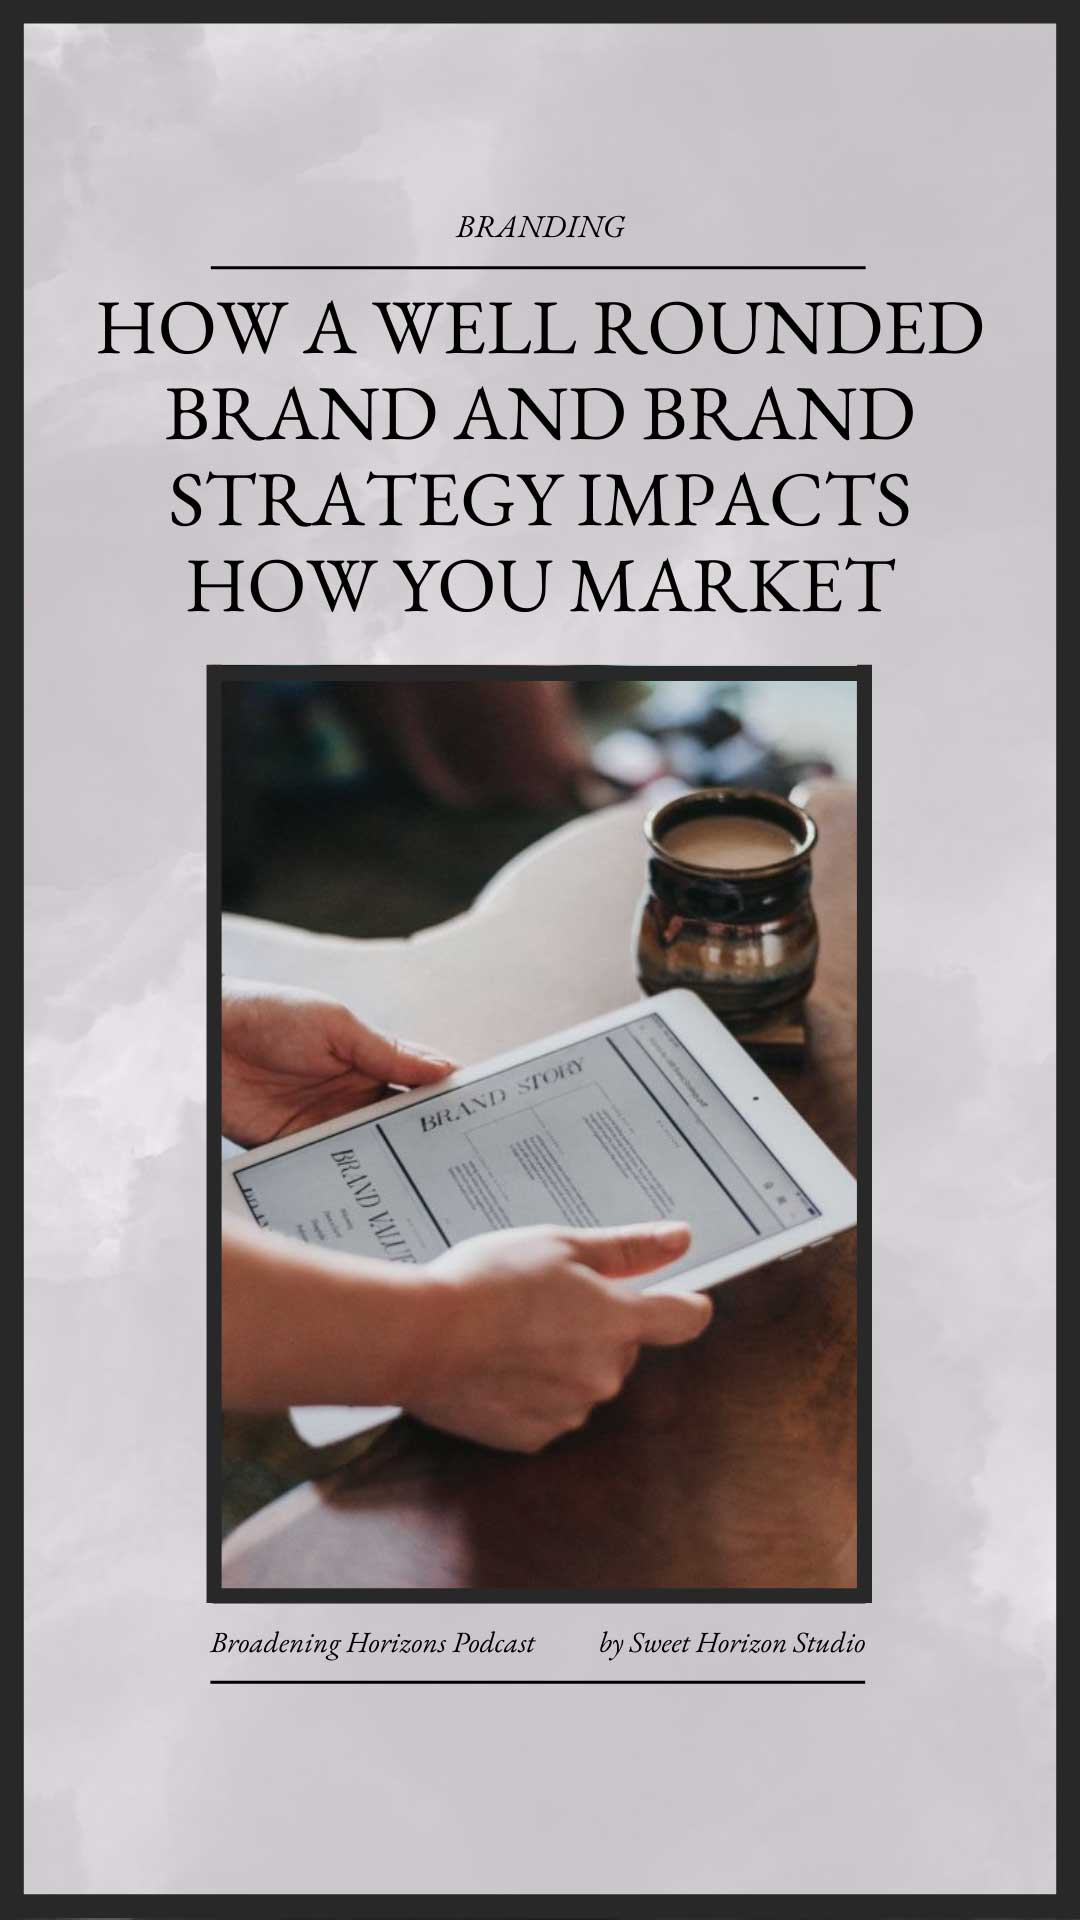 How a Well Rounded Brand and Brand Strategy Impacts How You Market from www.sweethorizonblog.com